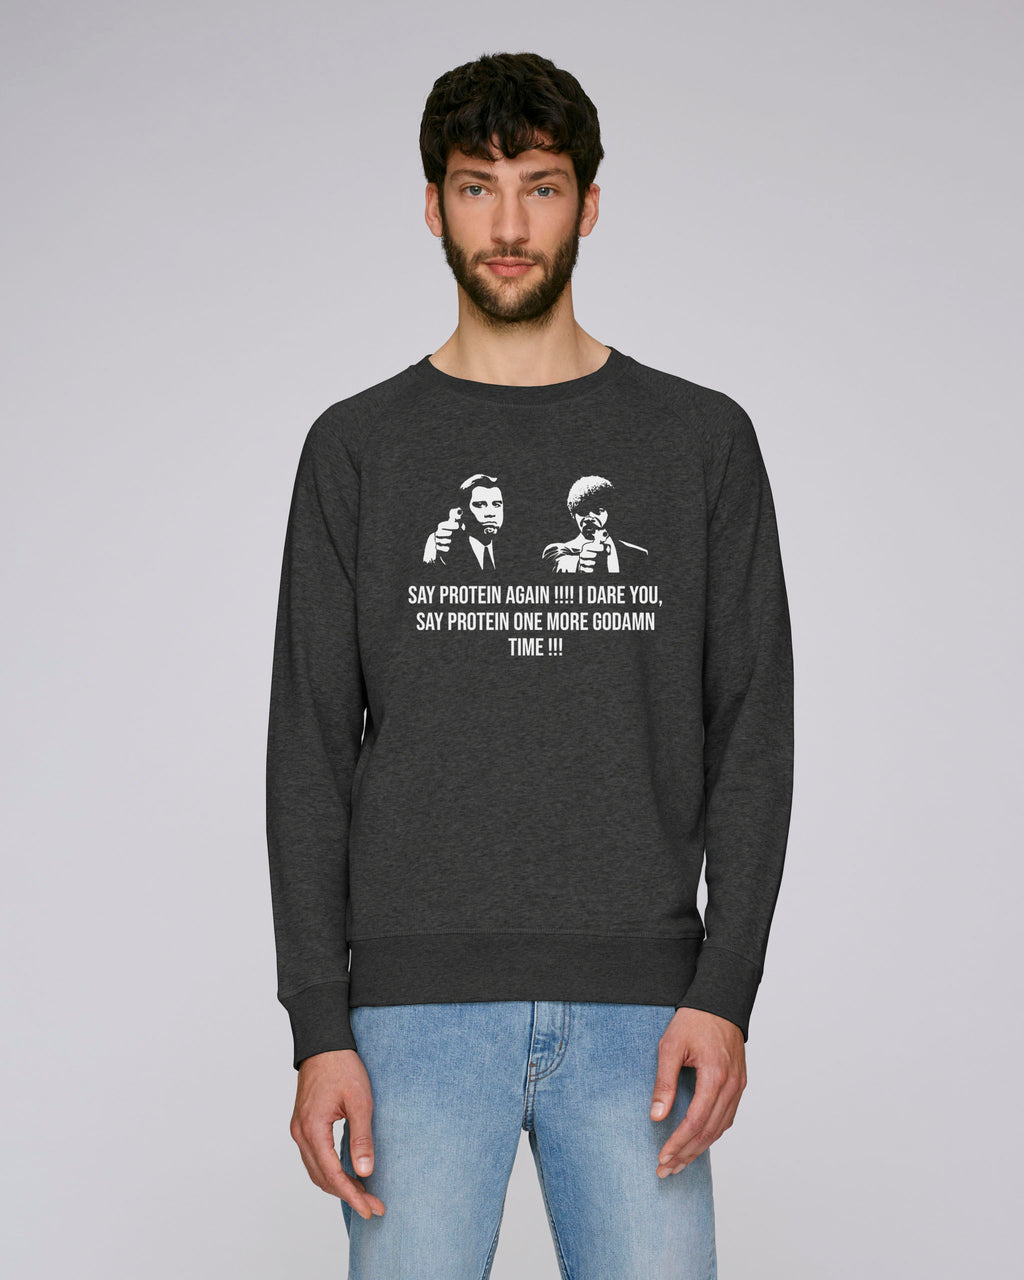 PULP FICTION - Sweatshirt homme - Raglan